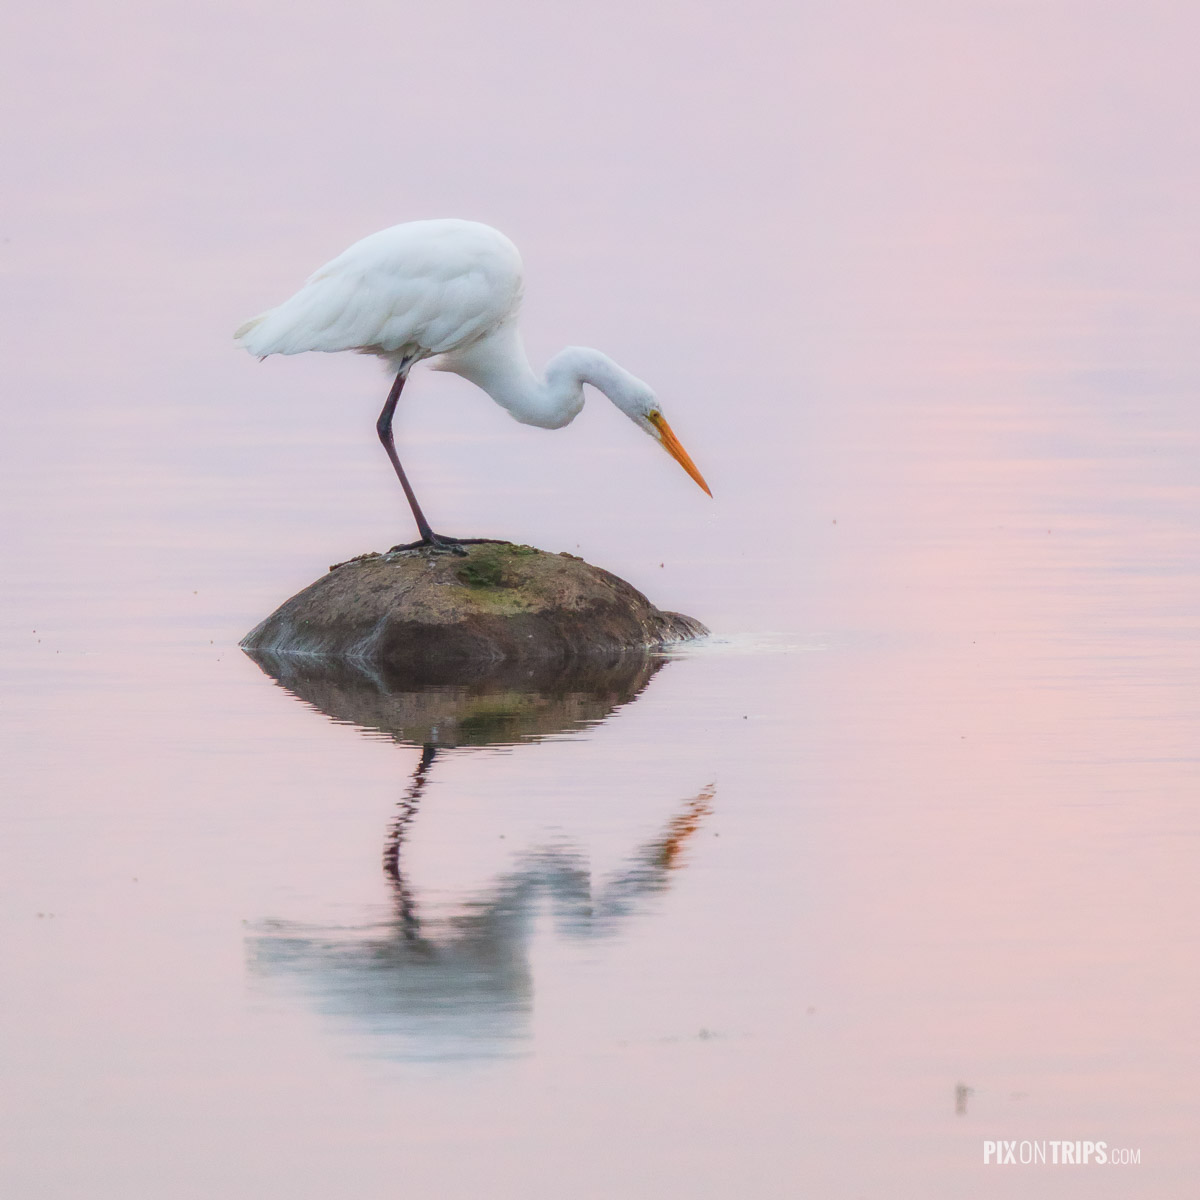 Egret perching on a rock surrounded by water with pink reflections at dawn, Ottawa, Canada - Pix on Trips